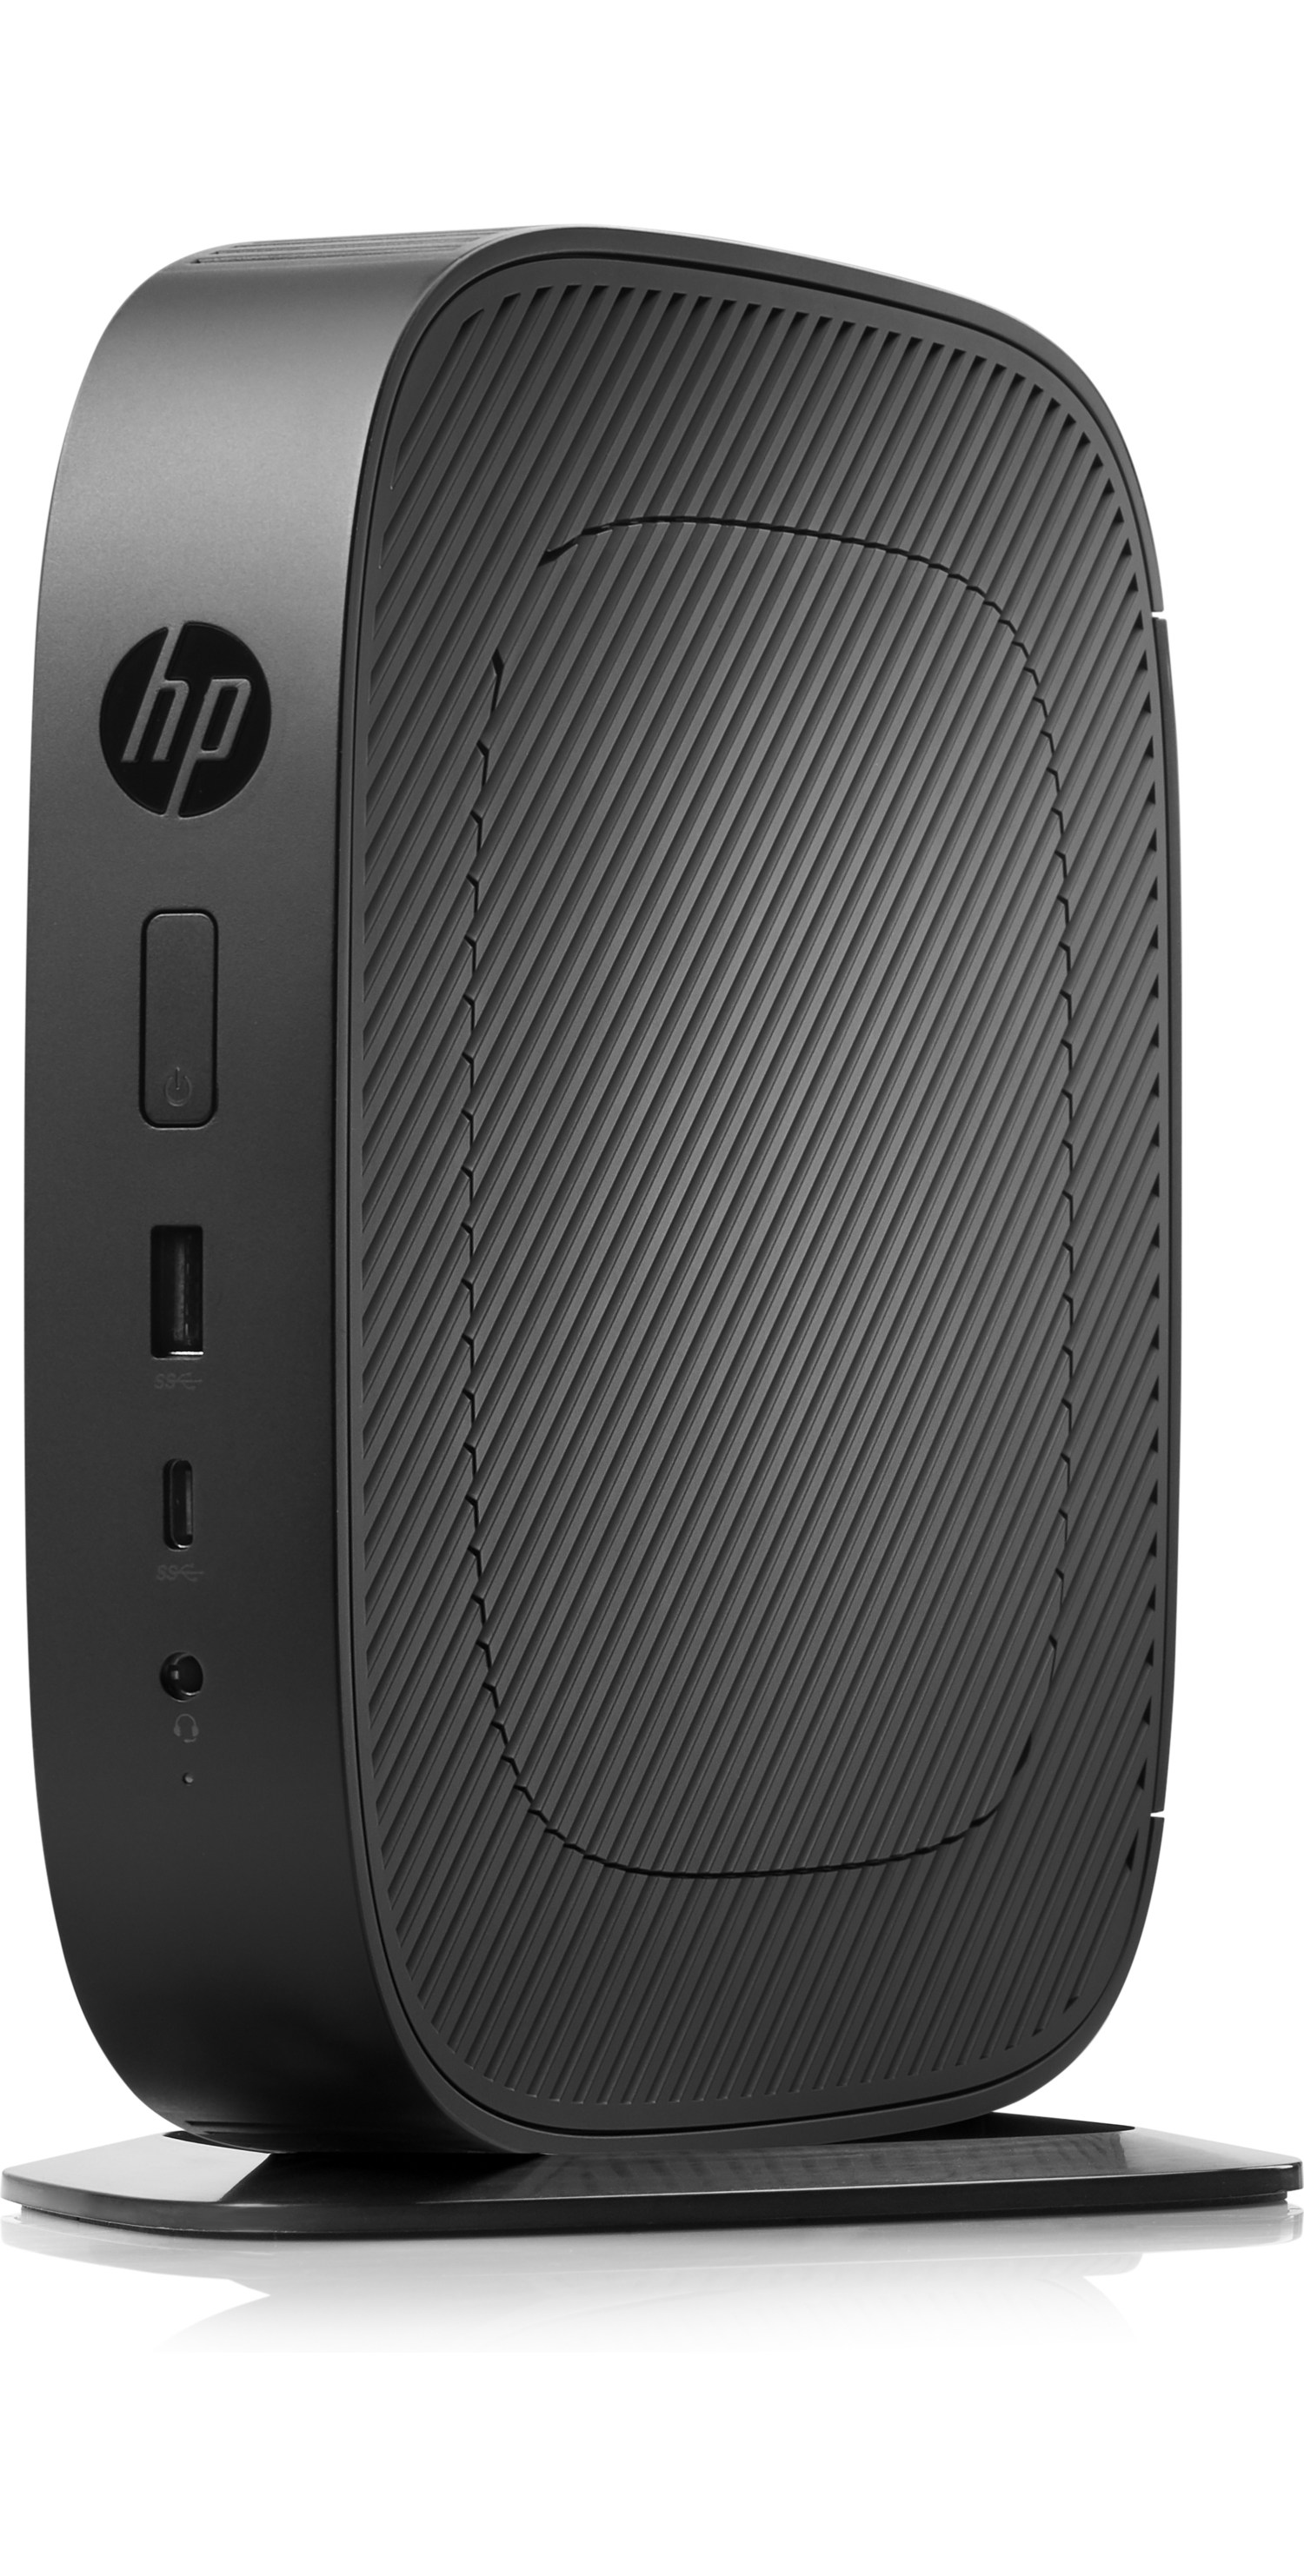 Hewlett-Packard, T530, AMD, GX-215J, 4GB, 8GB, THIN, PRO, WIFI,